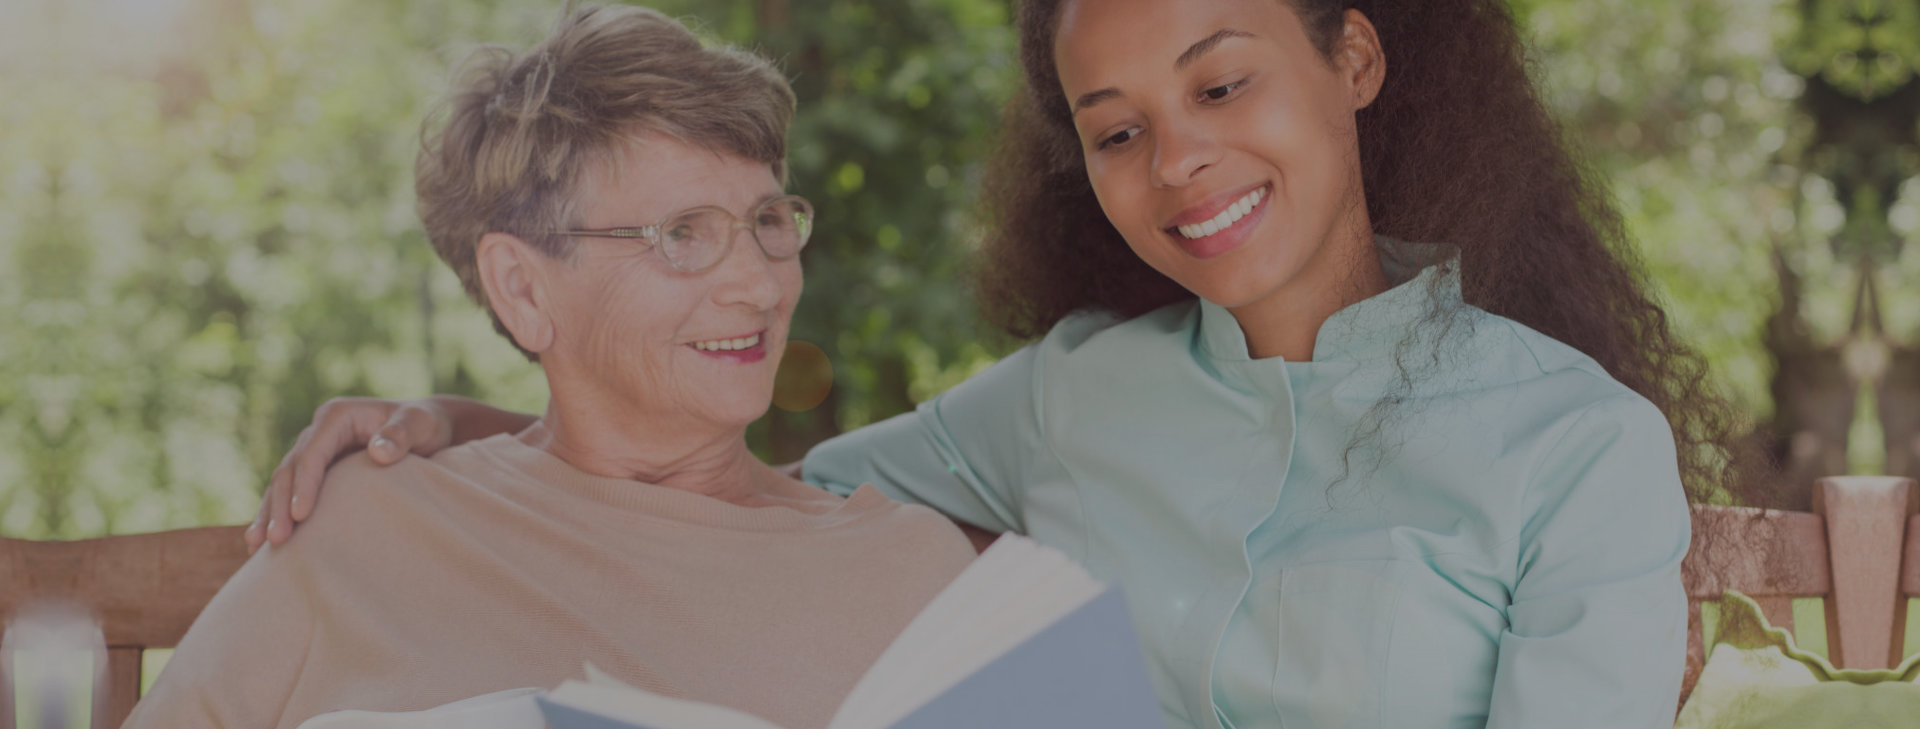 caregiver reading books with her patient